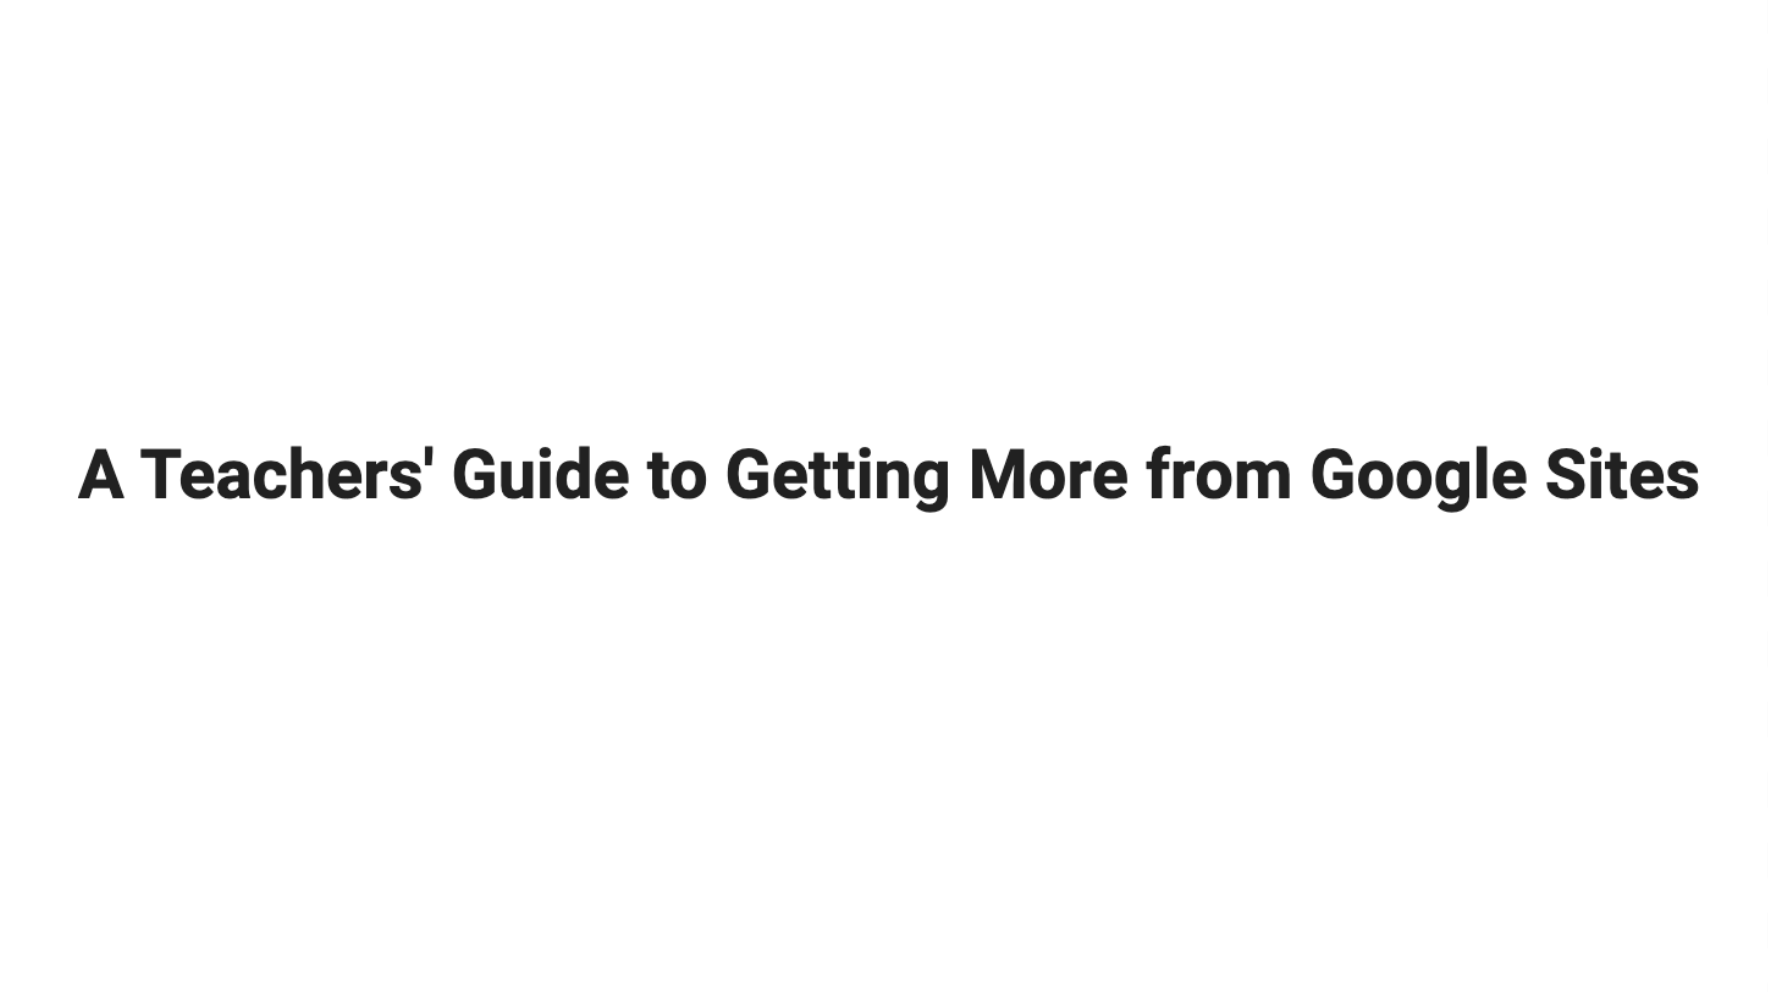 A Teachers' Guide to Getting More from Google Sites